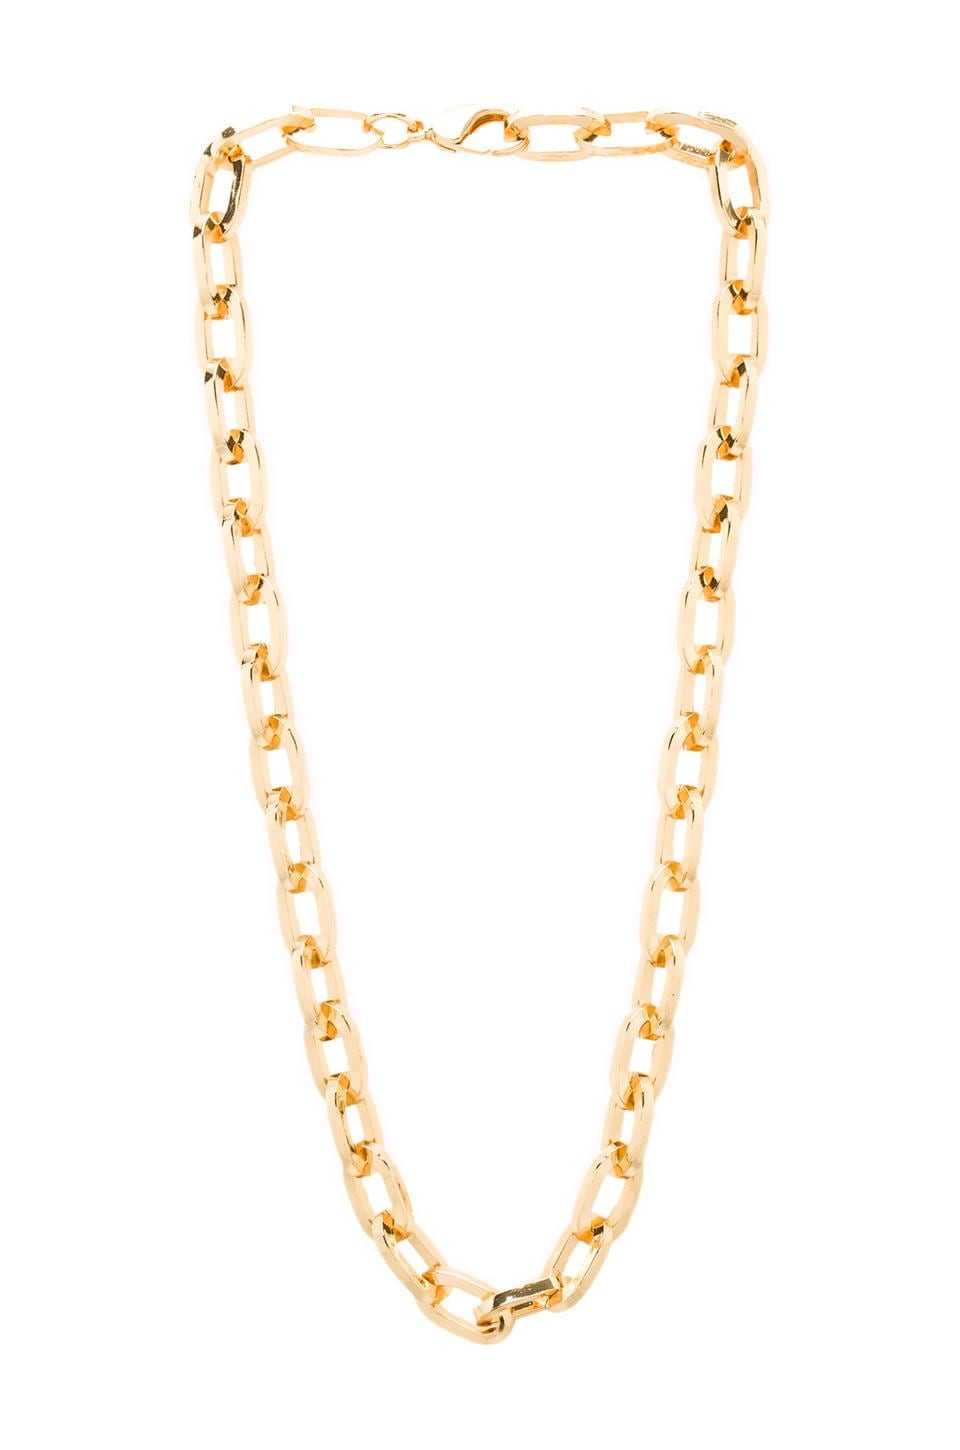 Luv AJ The Link Necklace in Gold